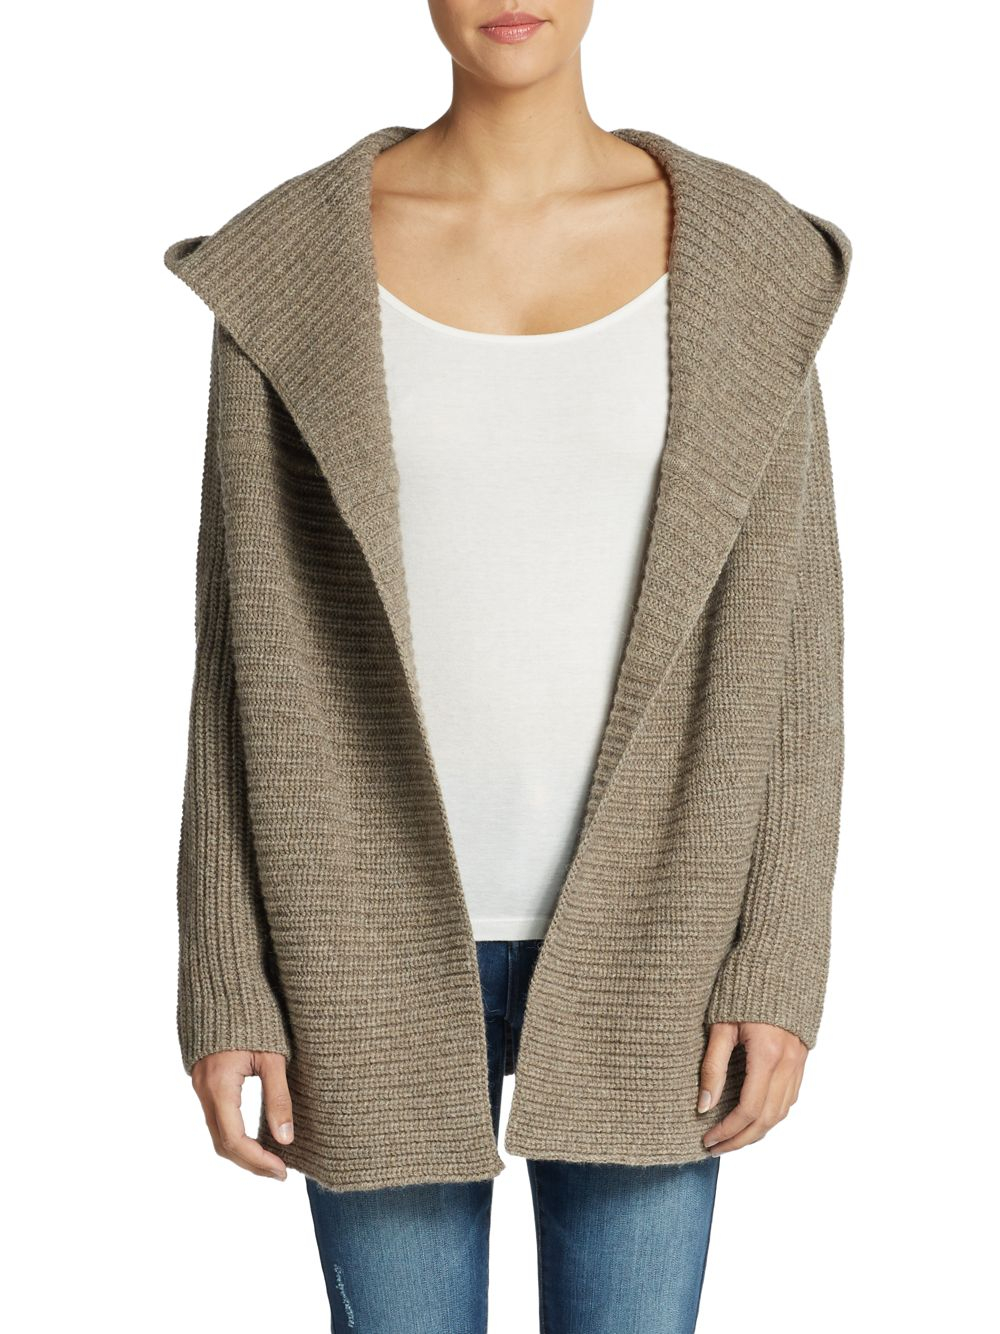 Lyst - Vince Hooded Chunky Knit Cardigan in Brown 472ca28b3